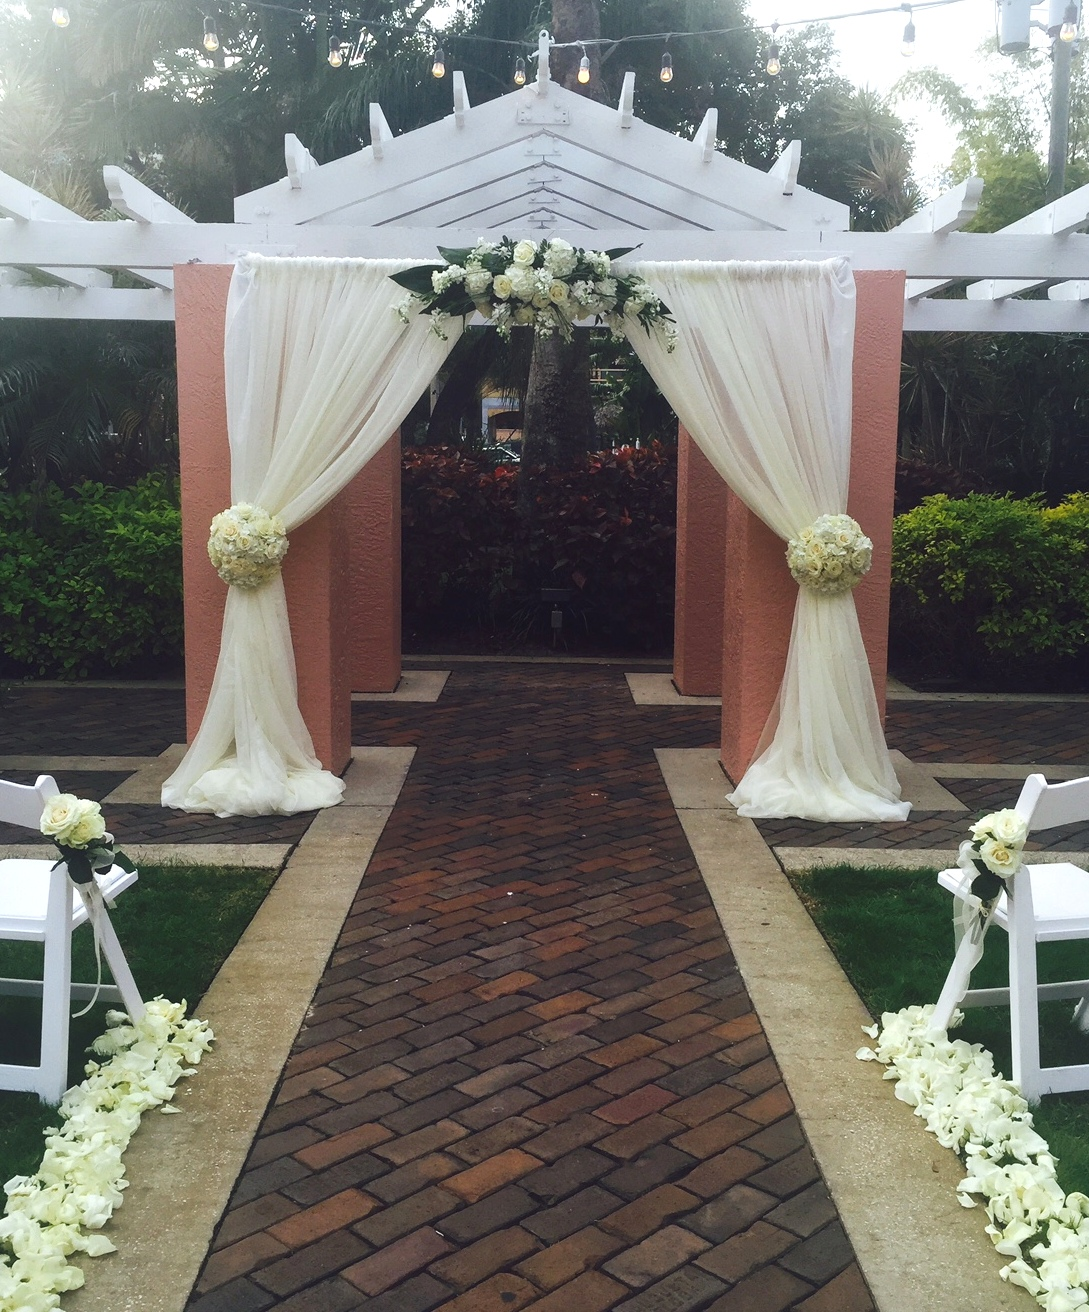 Wedding Ceremony Site with White Draping and White Flowers